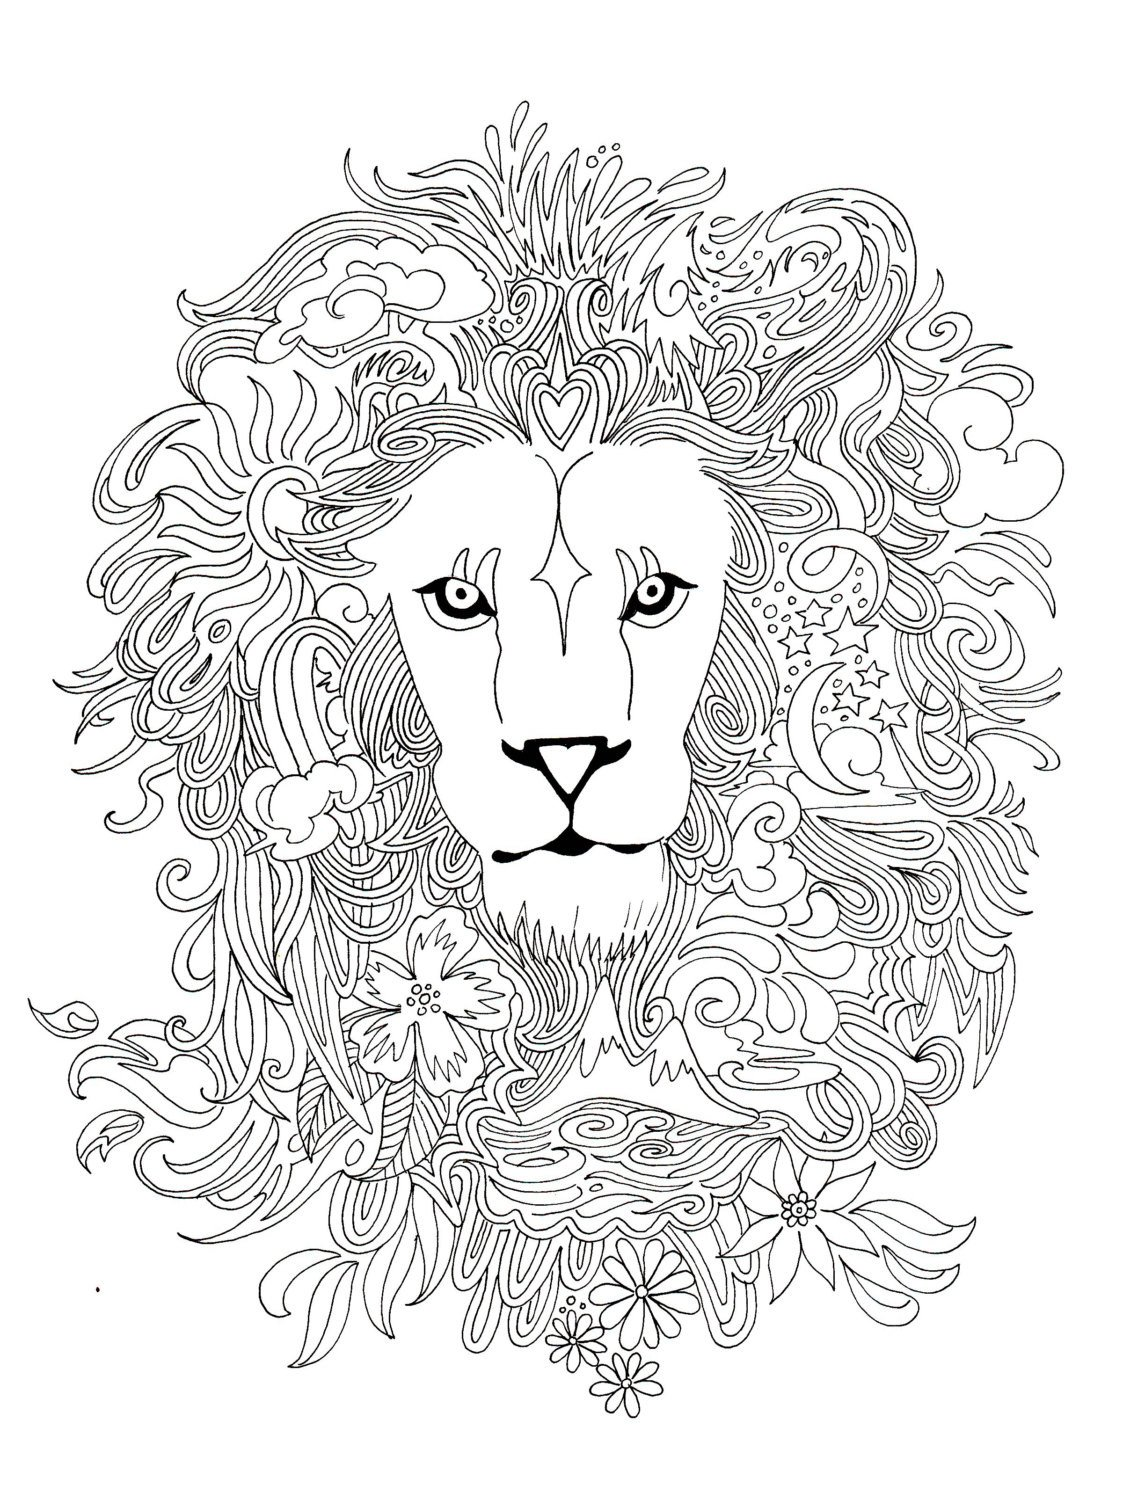 Lionheart Coloring Page By Borrelli Illustrations | Animal